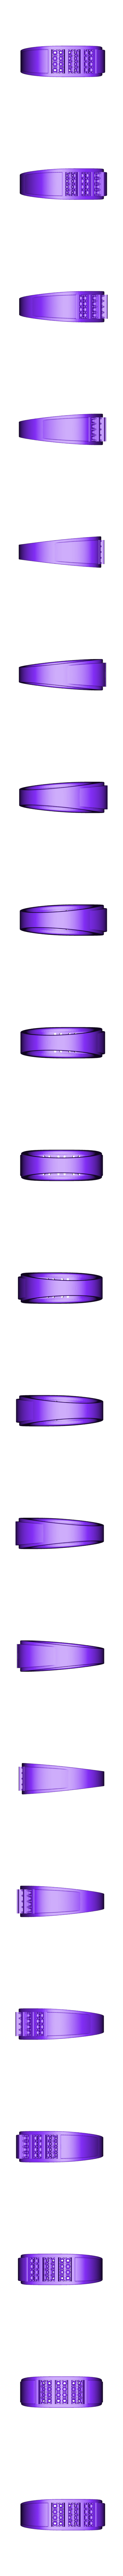 RG25920.stl Download STL file Exclusive jewelry 3D Design Of Mens Ring • Object to 3D print, VR3D